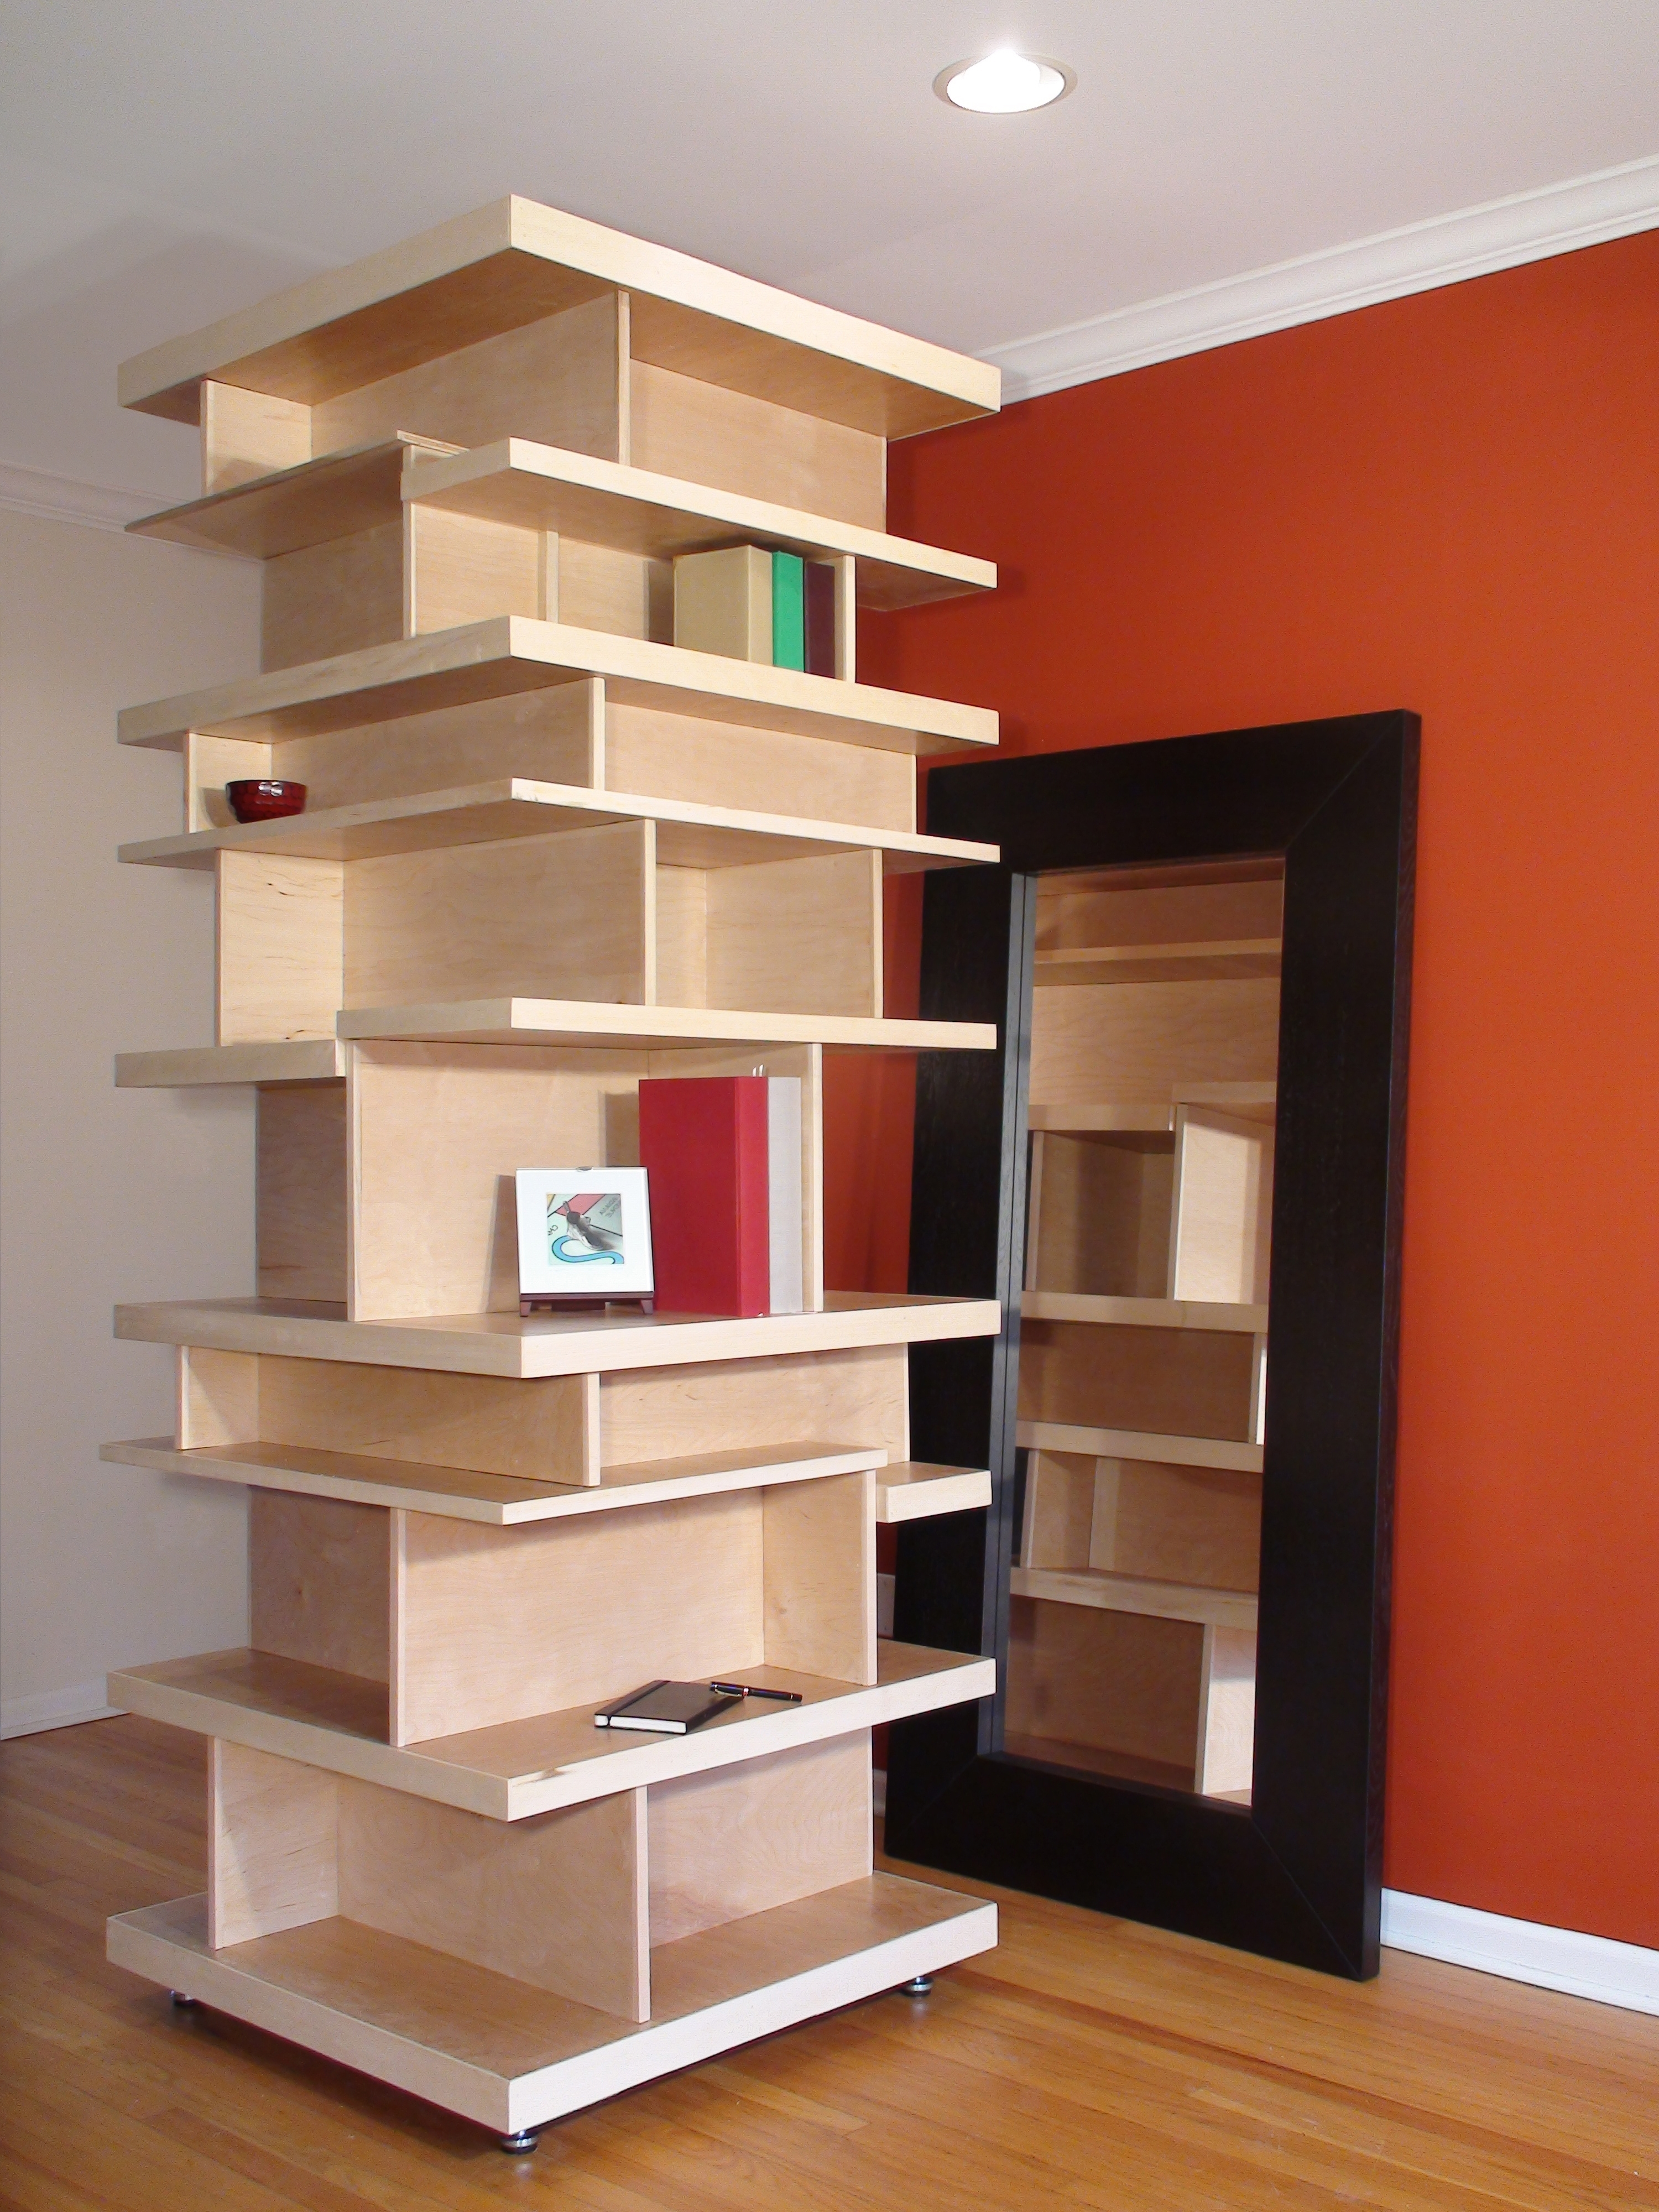 Most Current Freestanding Bookshelves Throughout Stackable Modular Freestanding Shelf System Room Divider – Non (View 7 of 15)